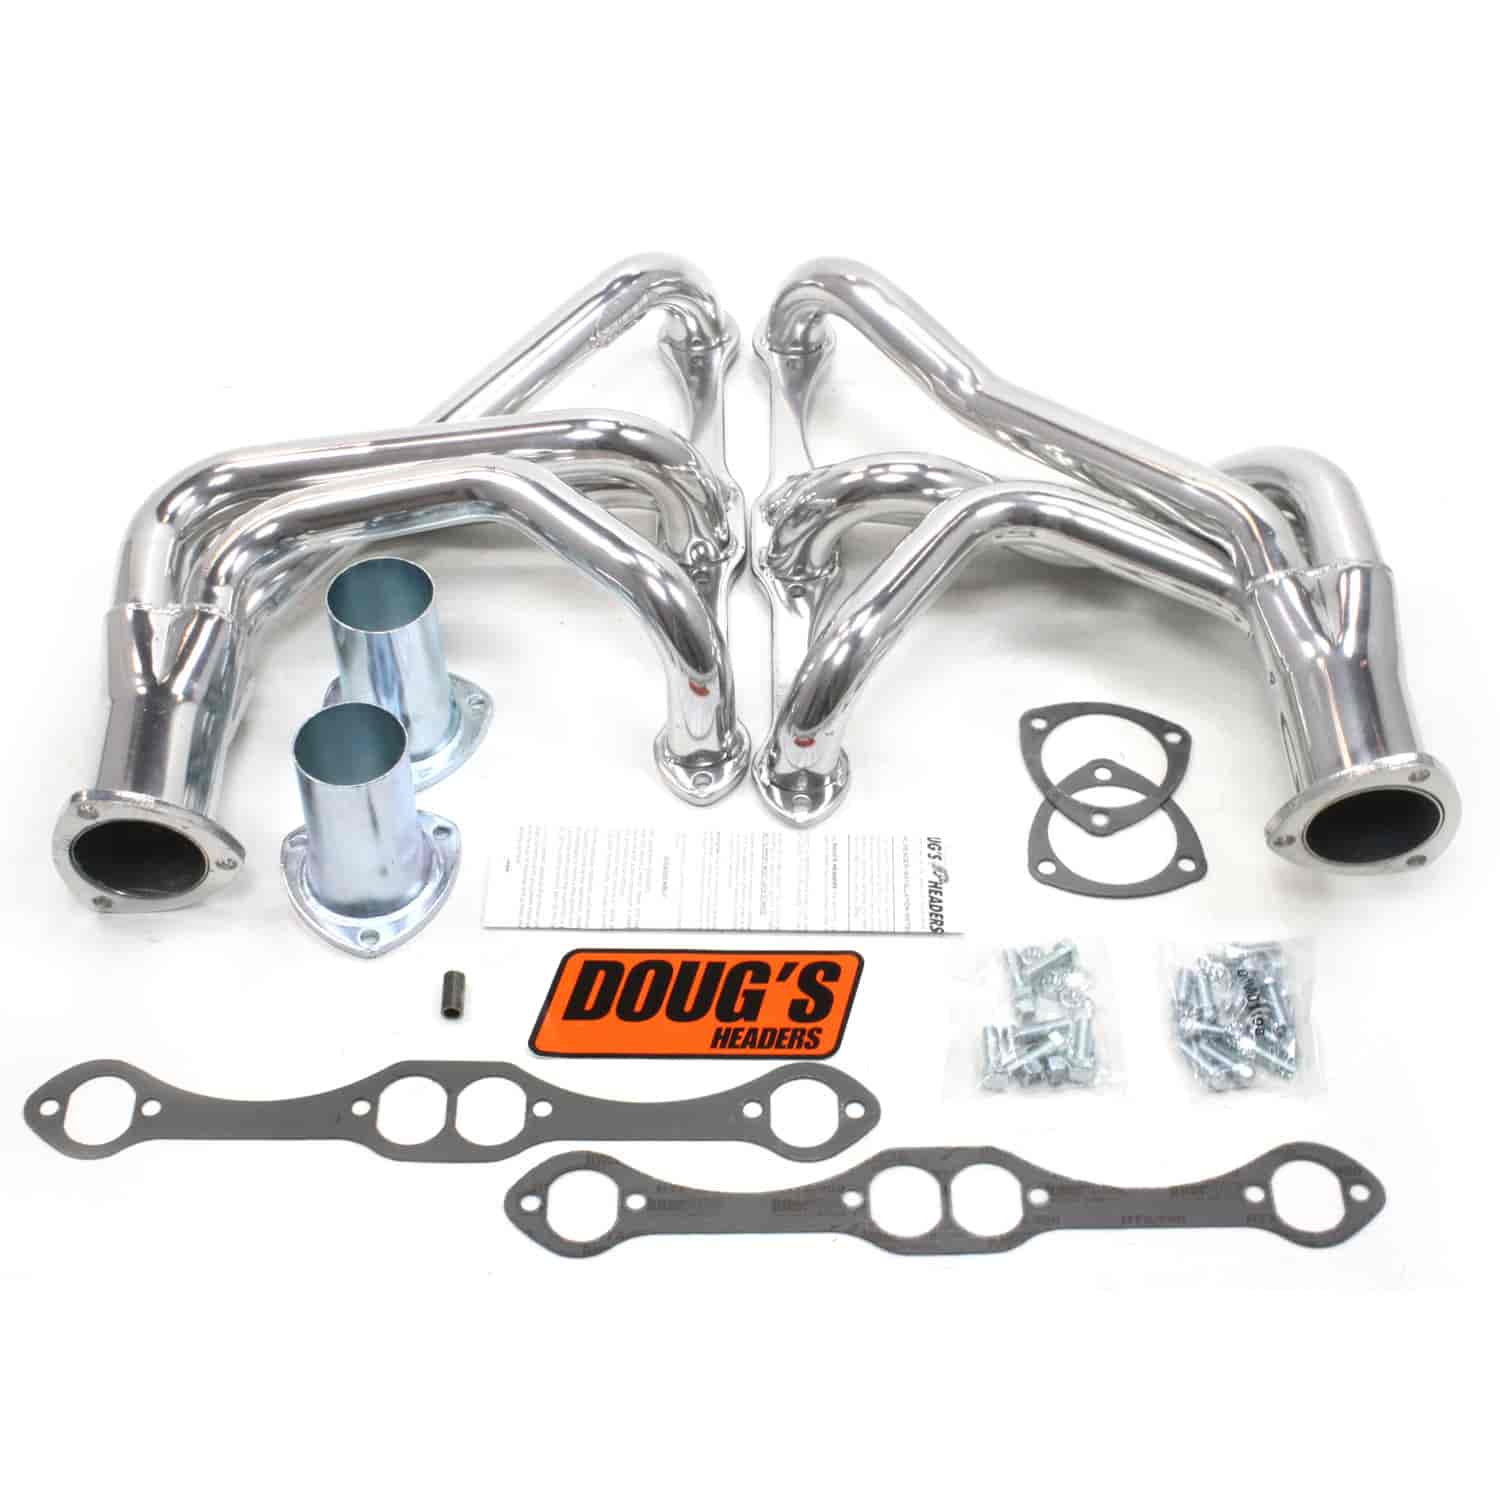 Doug's Headers D350